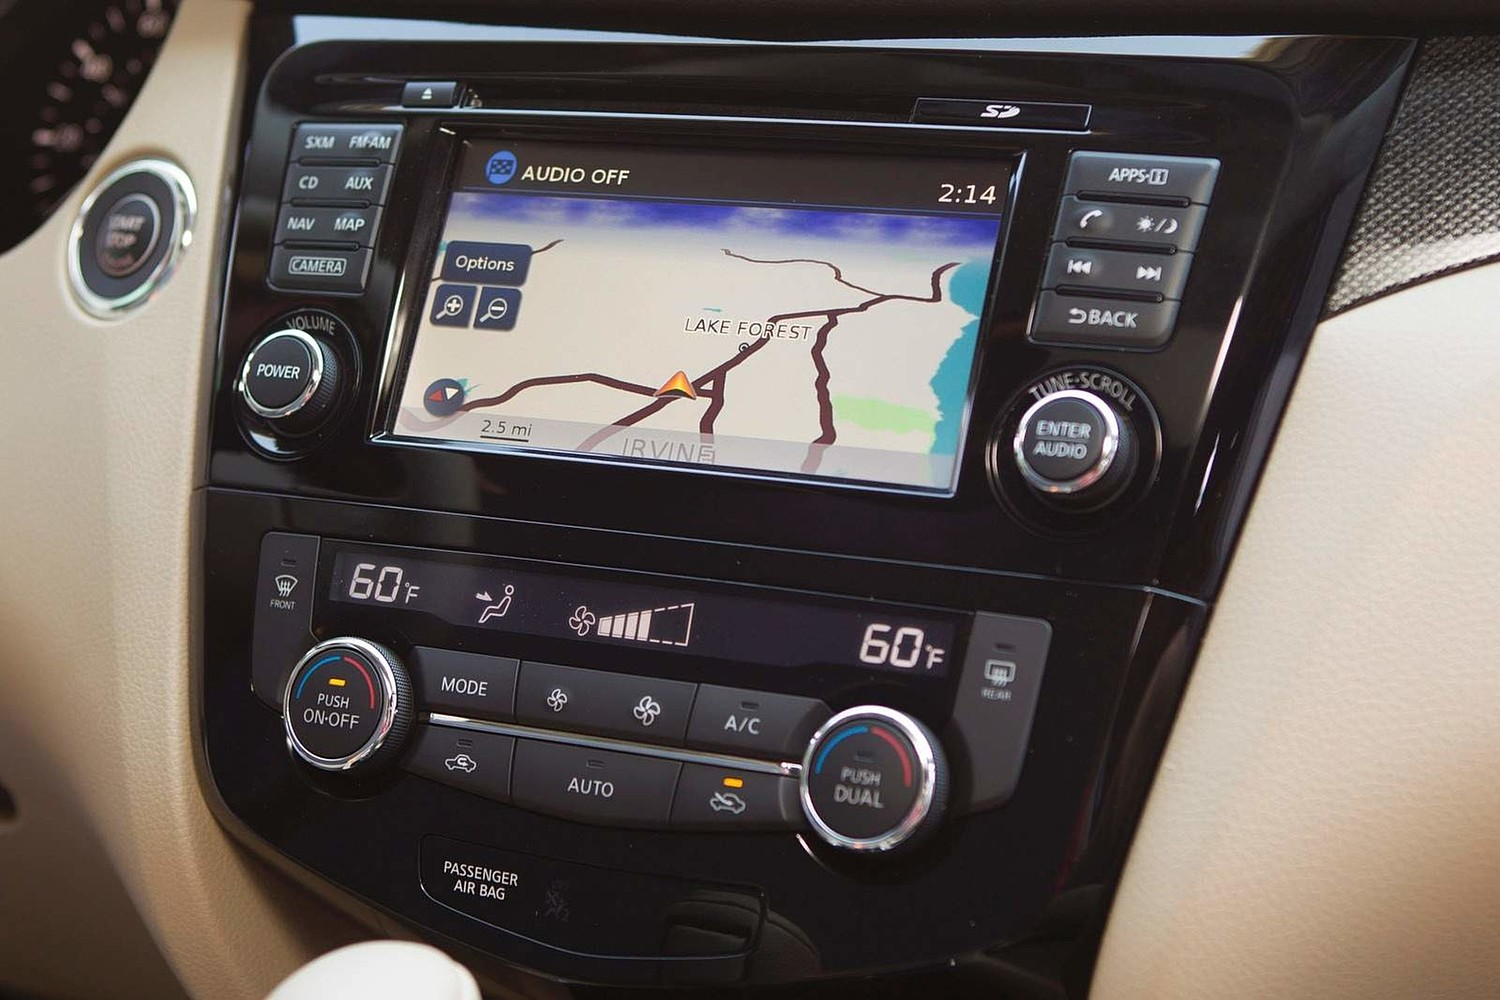 Nissan Rogue SL 4dr SUV Navigation System (2014 model year shown)